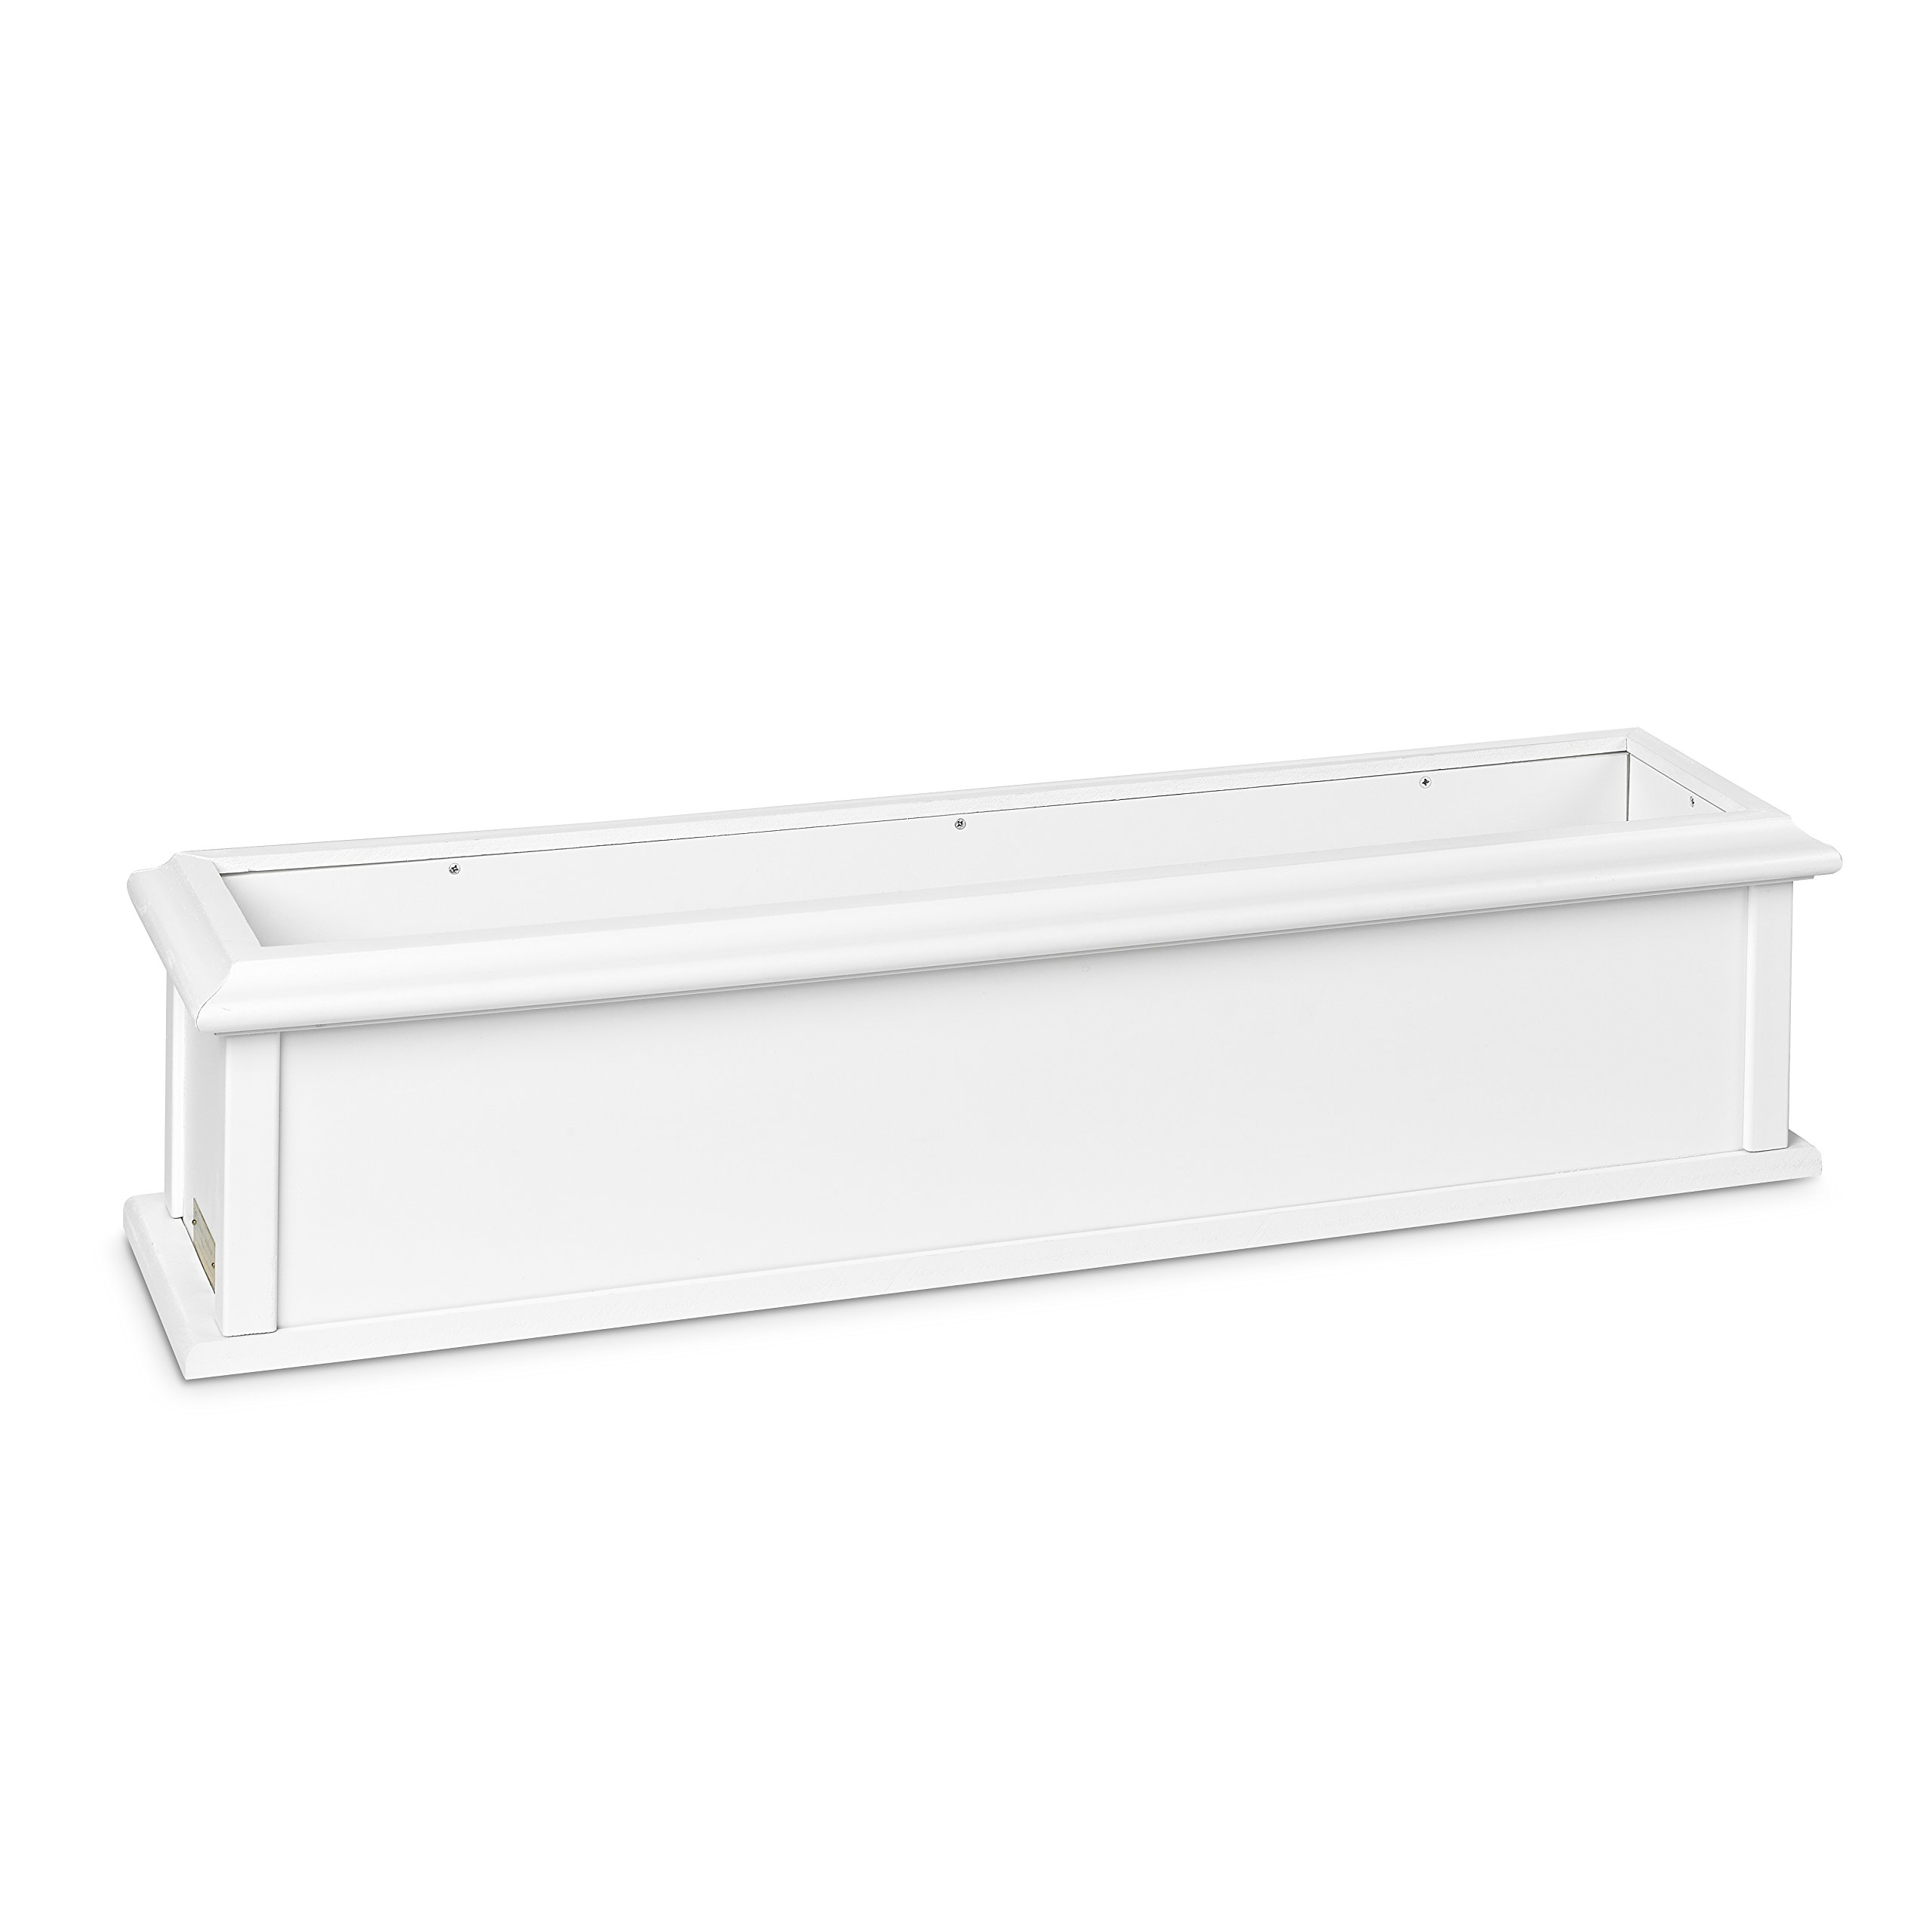 Good Directions 999163 Charleston Vinyl Window Box Kit with 2 Brackets, 46'' x 9'' x 10'', White